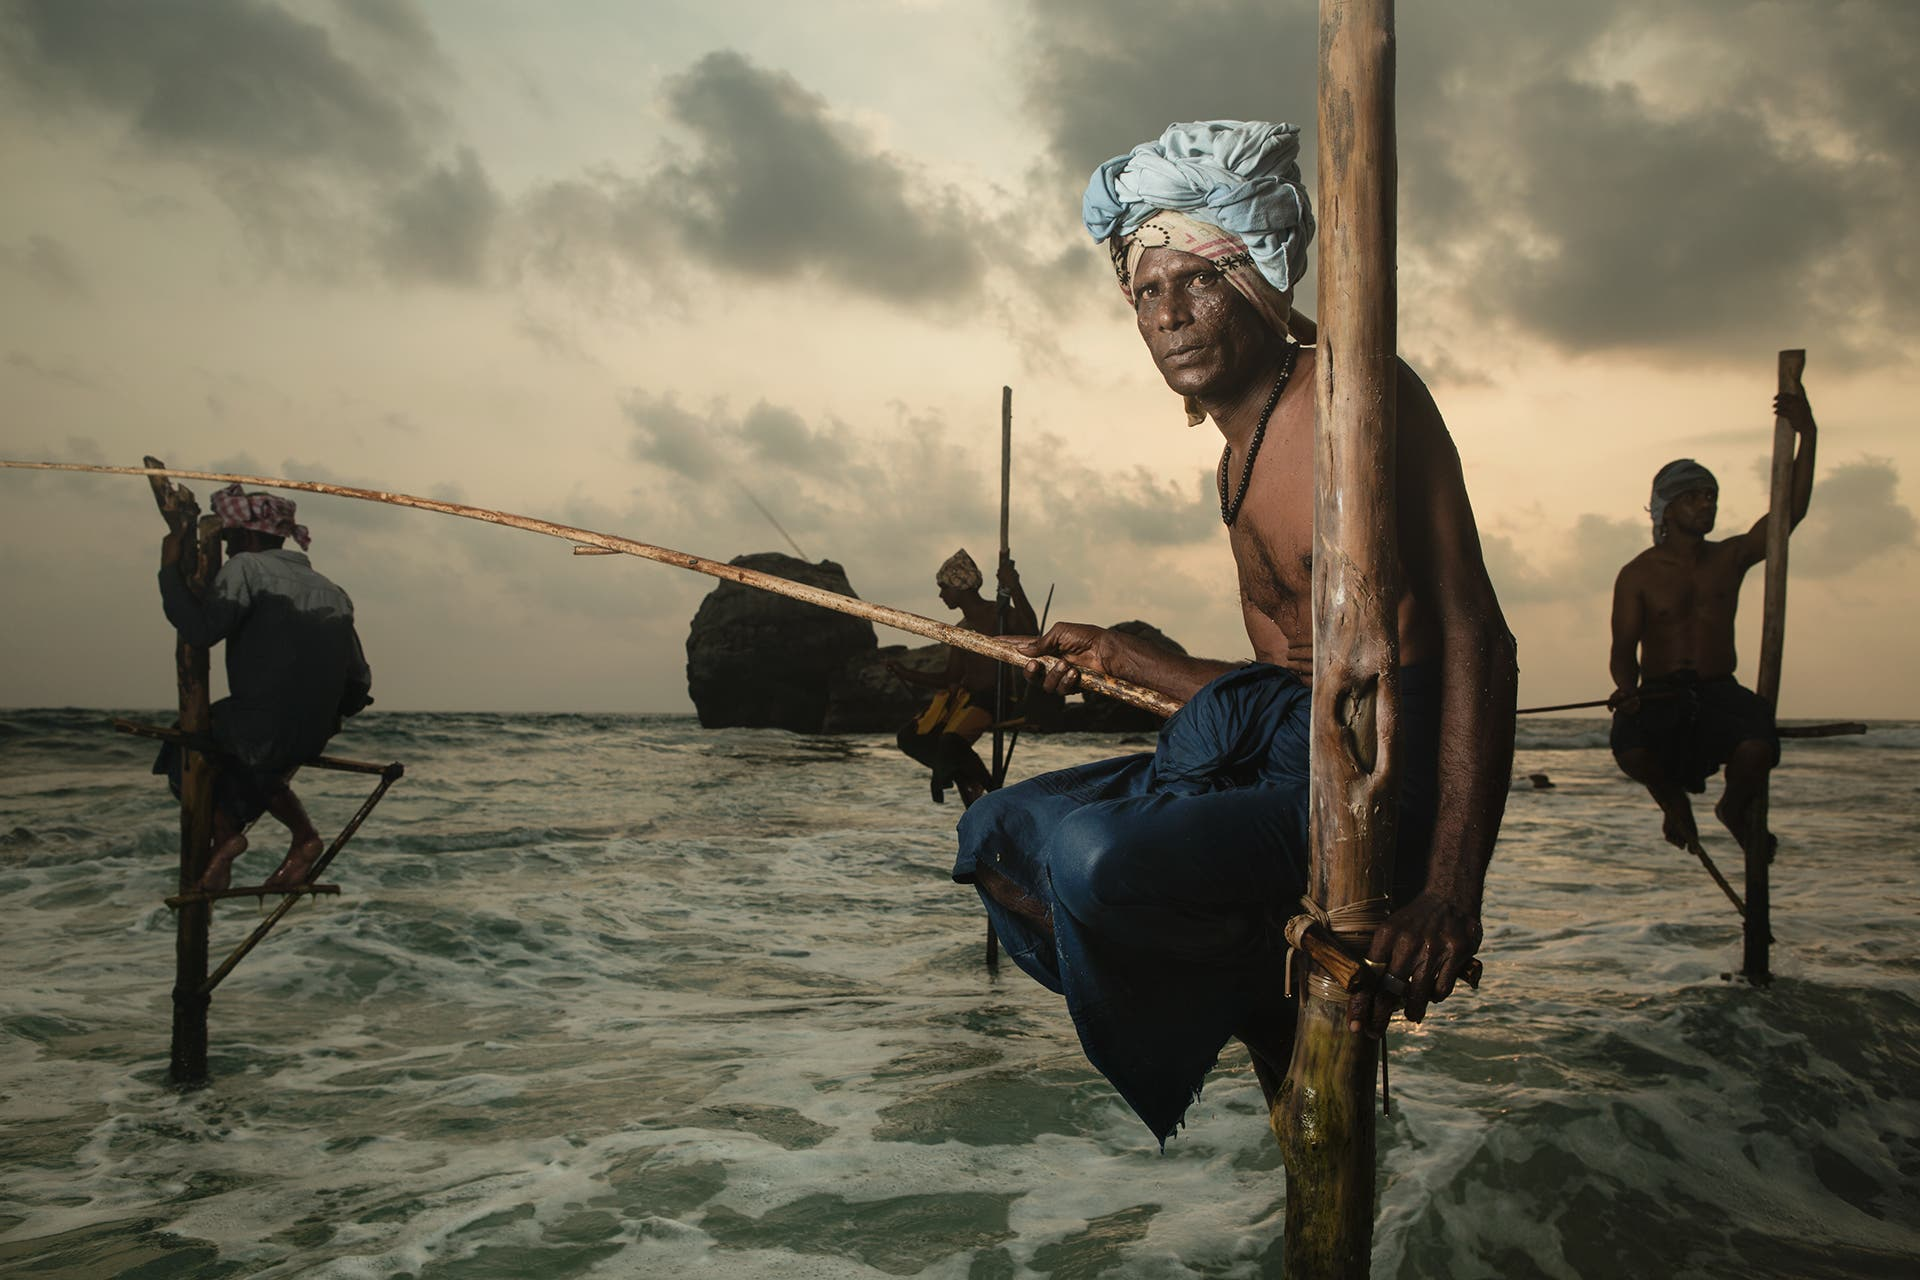 Giacomo Bruno Captures Sri Lanka's Fascinating Stilt Fishing Tradition